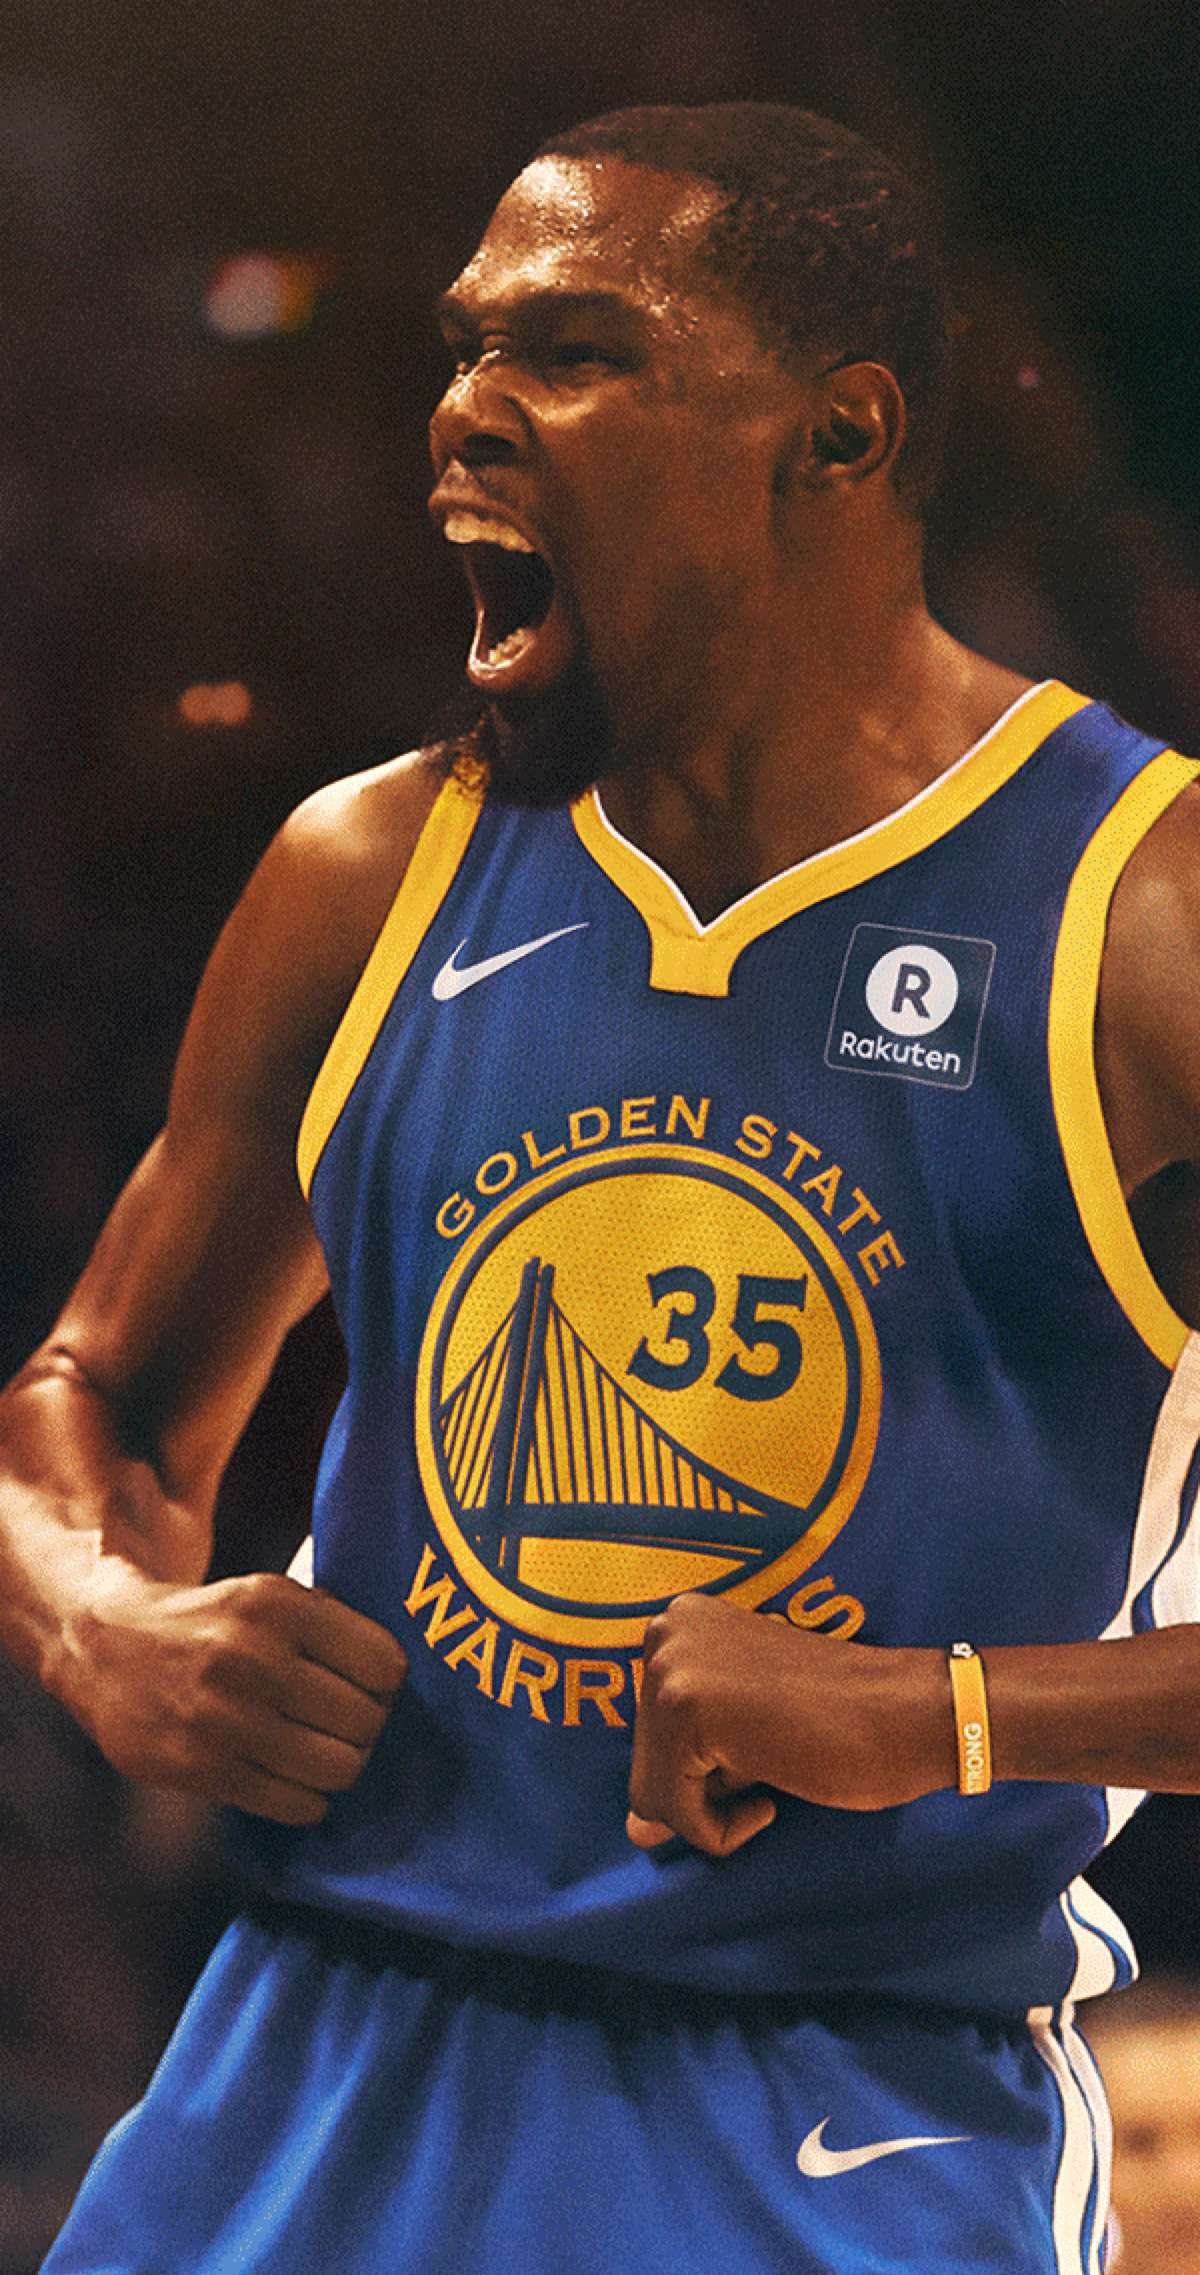 GOLDEN STATE | 35